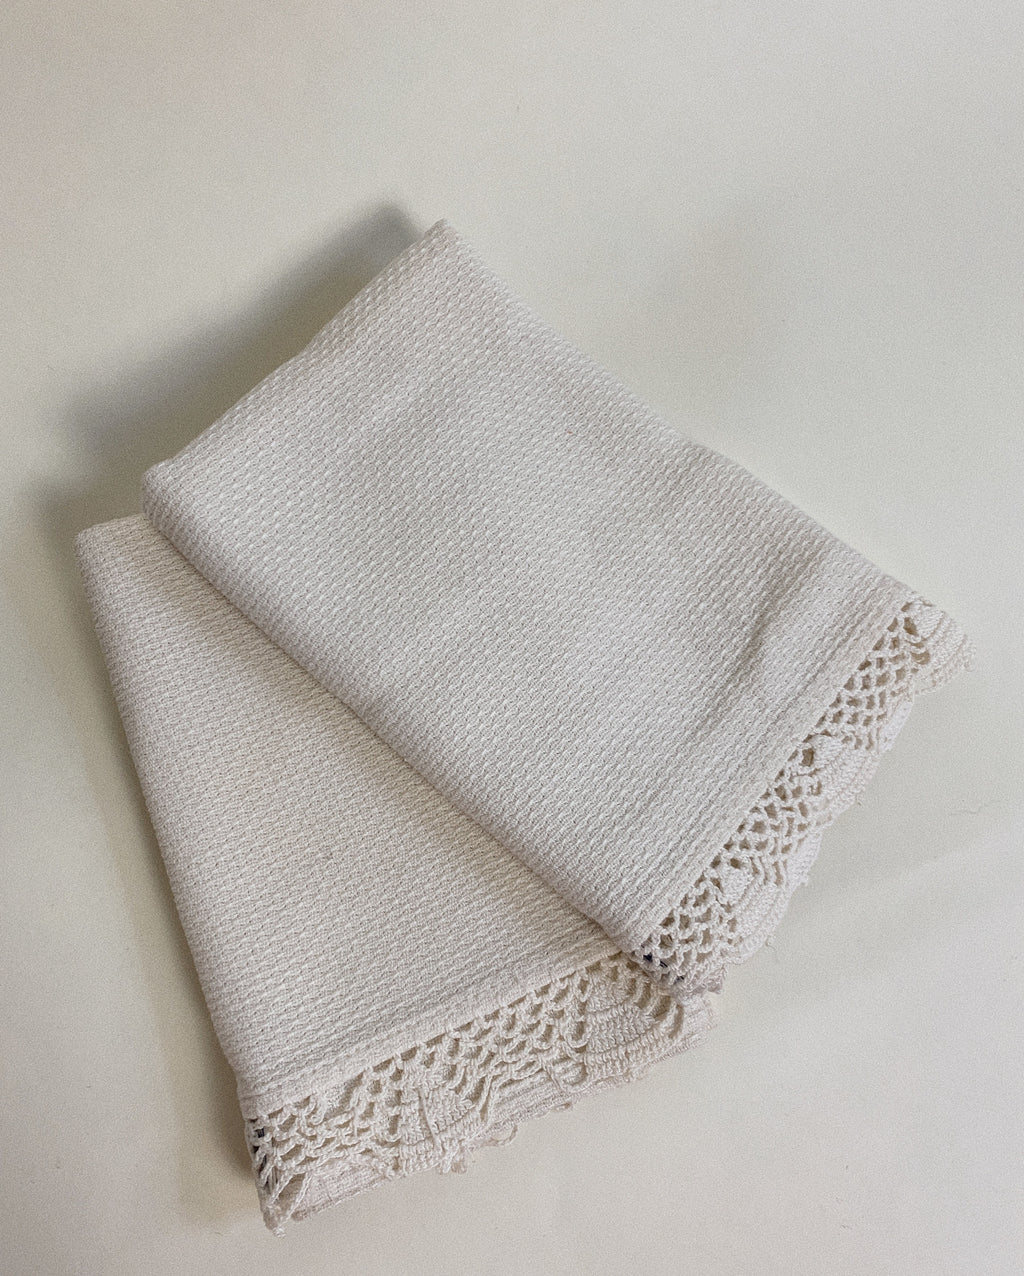 TWO CROCHET LINEN TOWELS